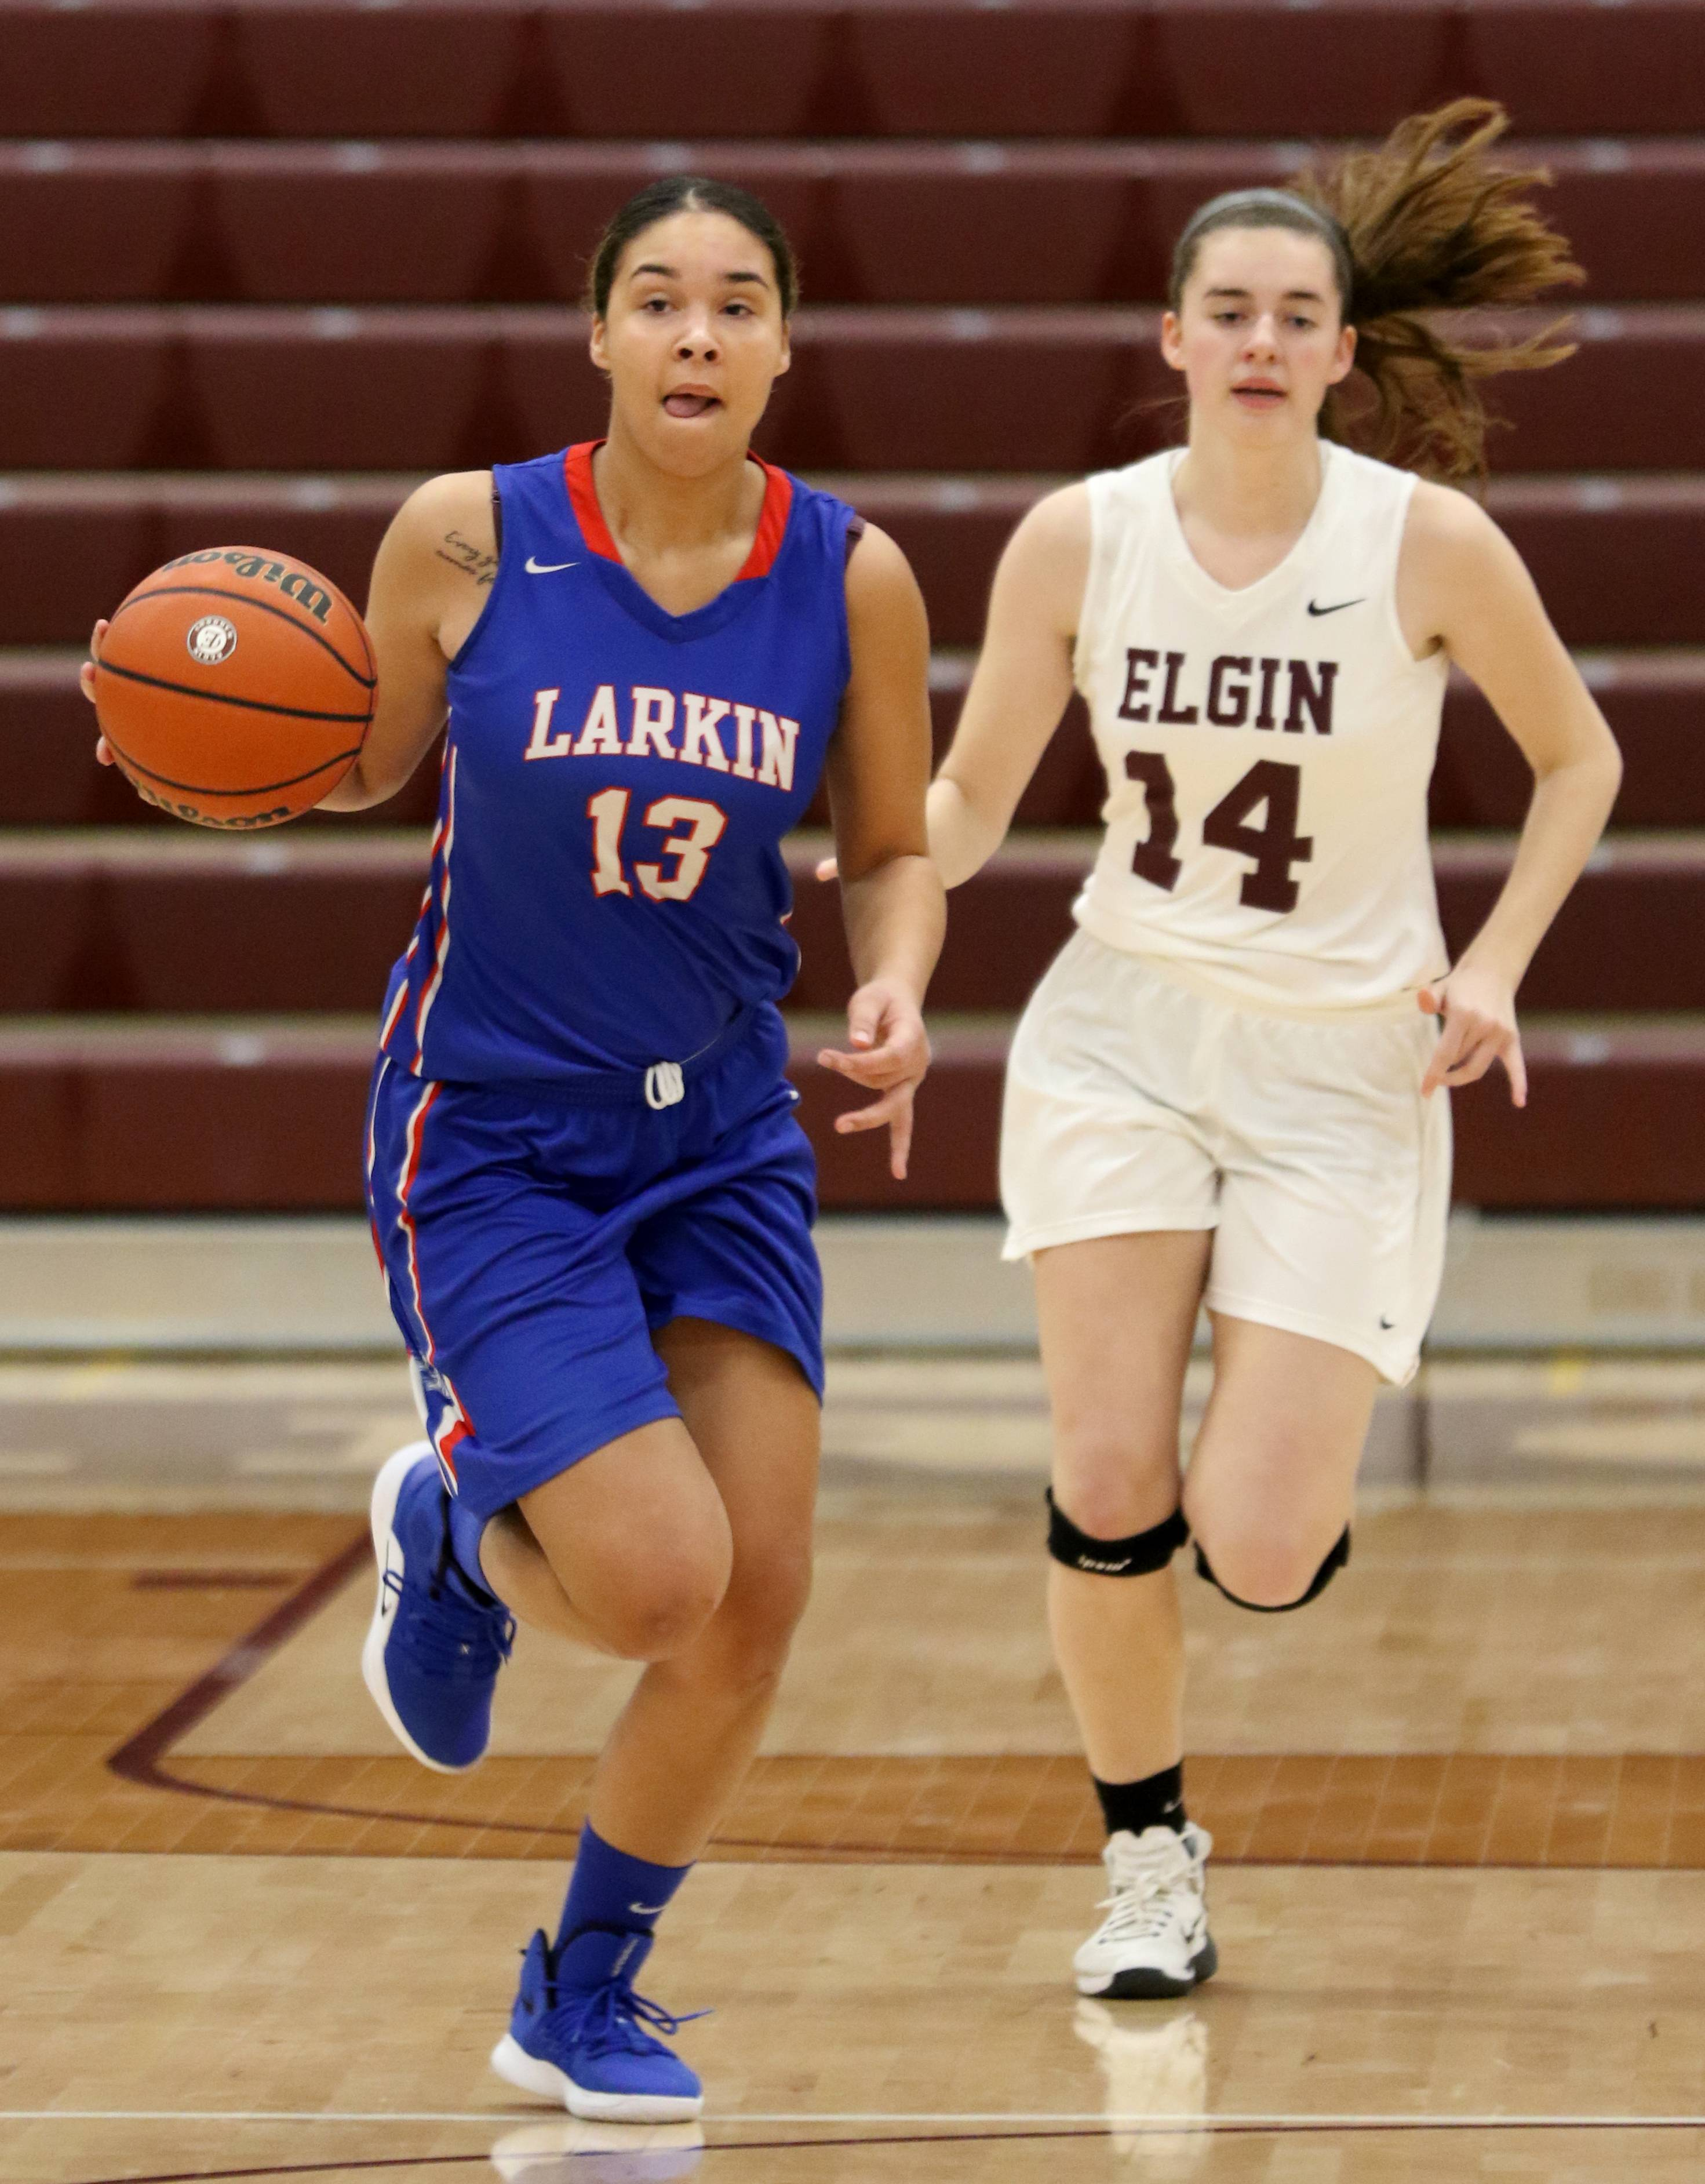 Larkin's  Brianna Young, left, brings the ball up court as Elgin's Emily Graves follows the action during Elgin City Classic Girls Basketball Tournament action at Chesbrough Fieldhouse on the campus of Elgin High School Wednesday night.